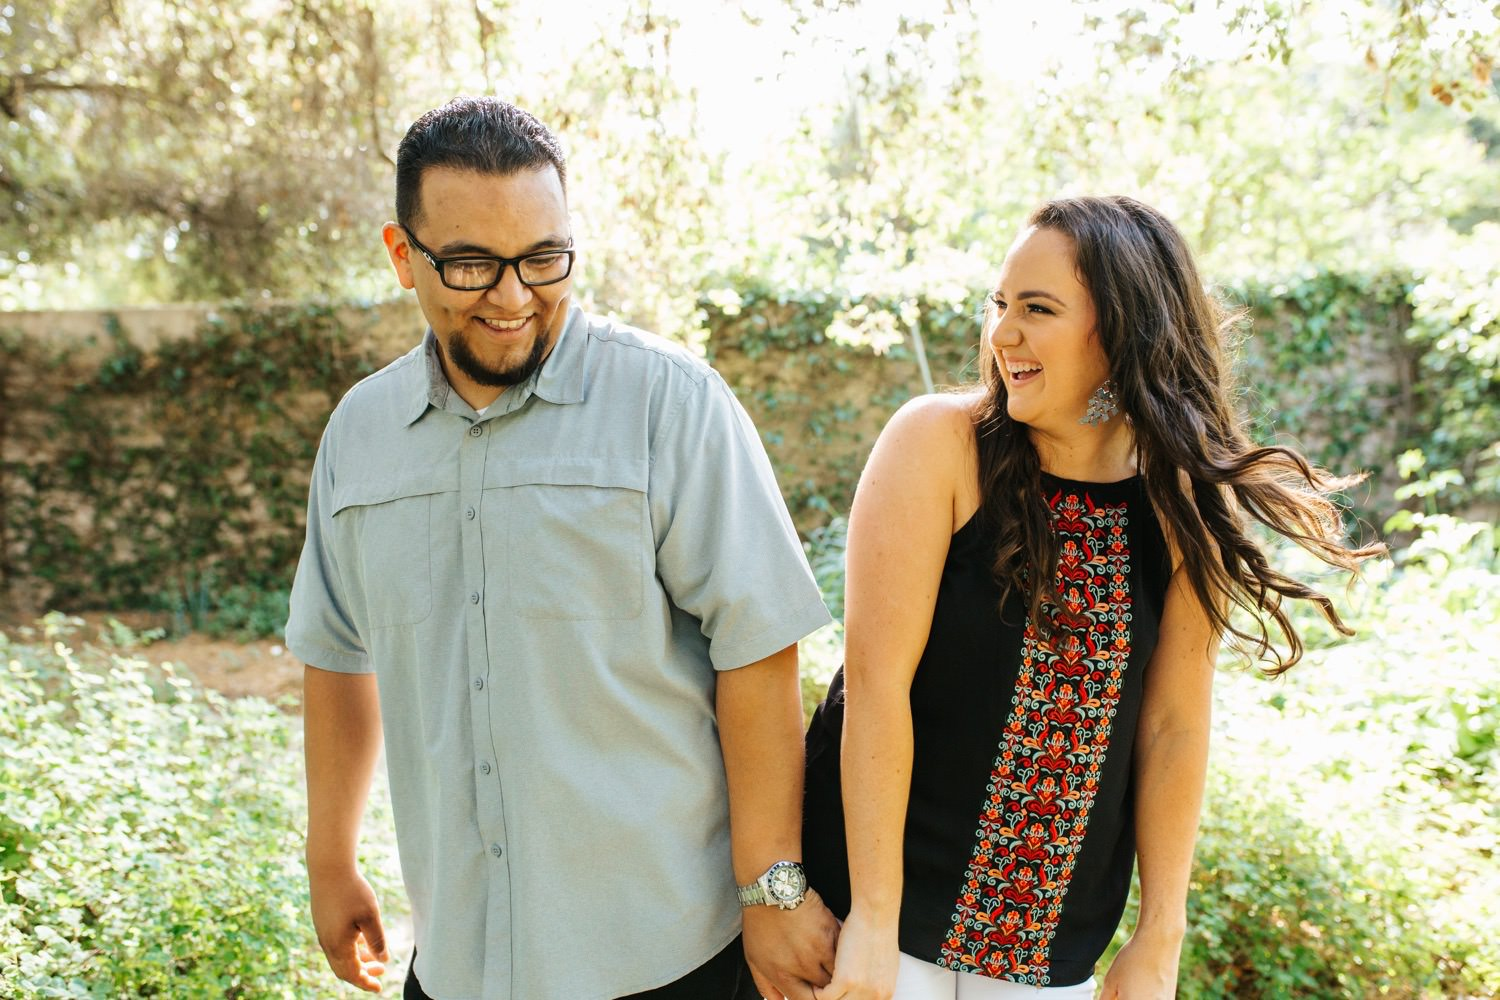 fun-engagement-photos-los-angeles